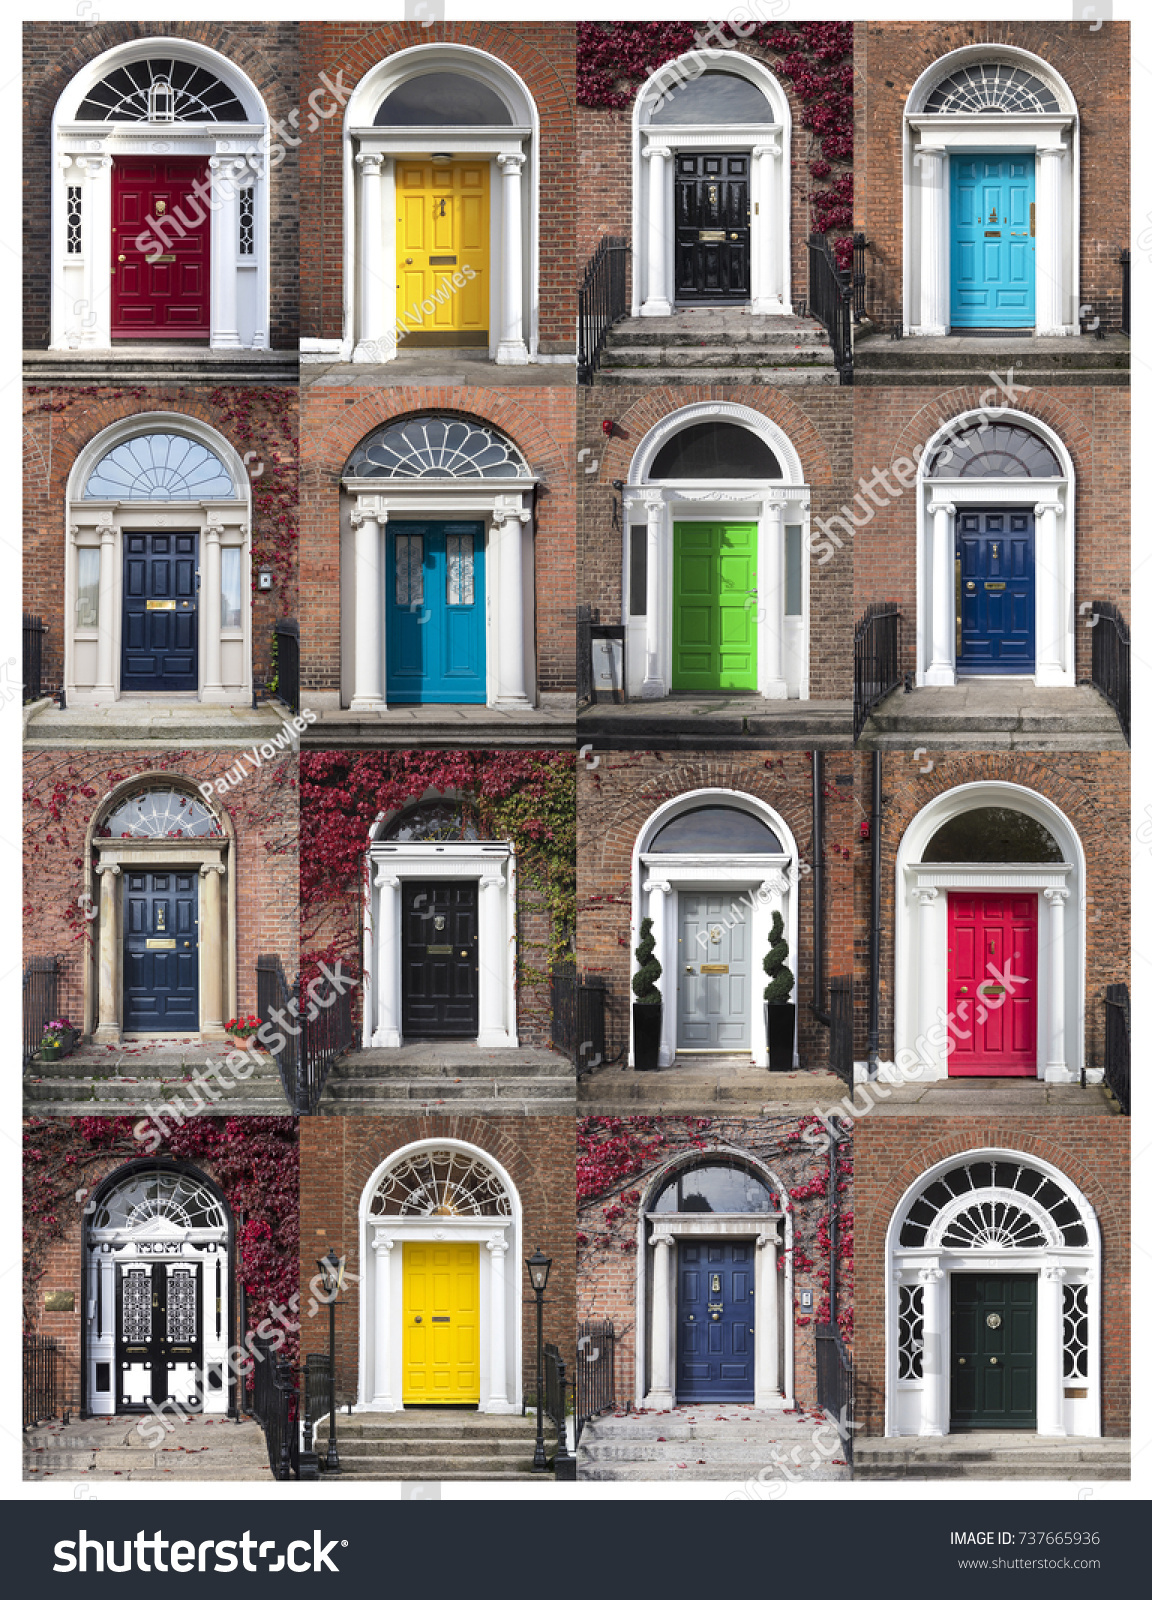 GEORGIAN DOORS - DUBLIN IRELAND & Georgian Doors Dublin Ireland Stock Photo 737665936 - Shutterstock pezcame.com